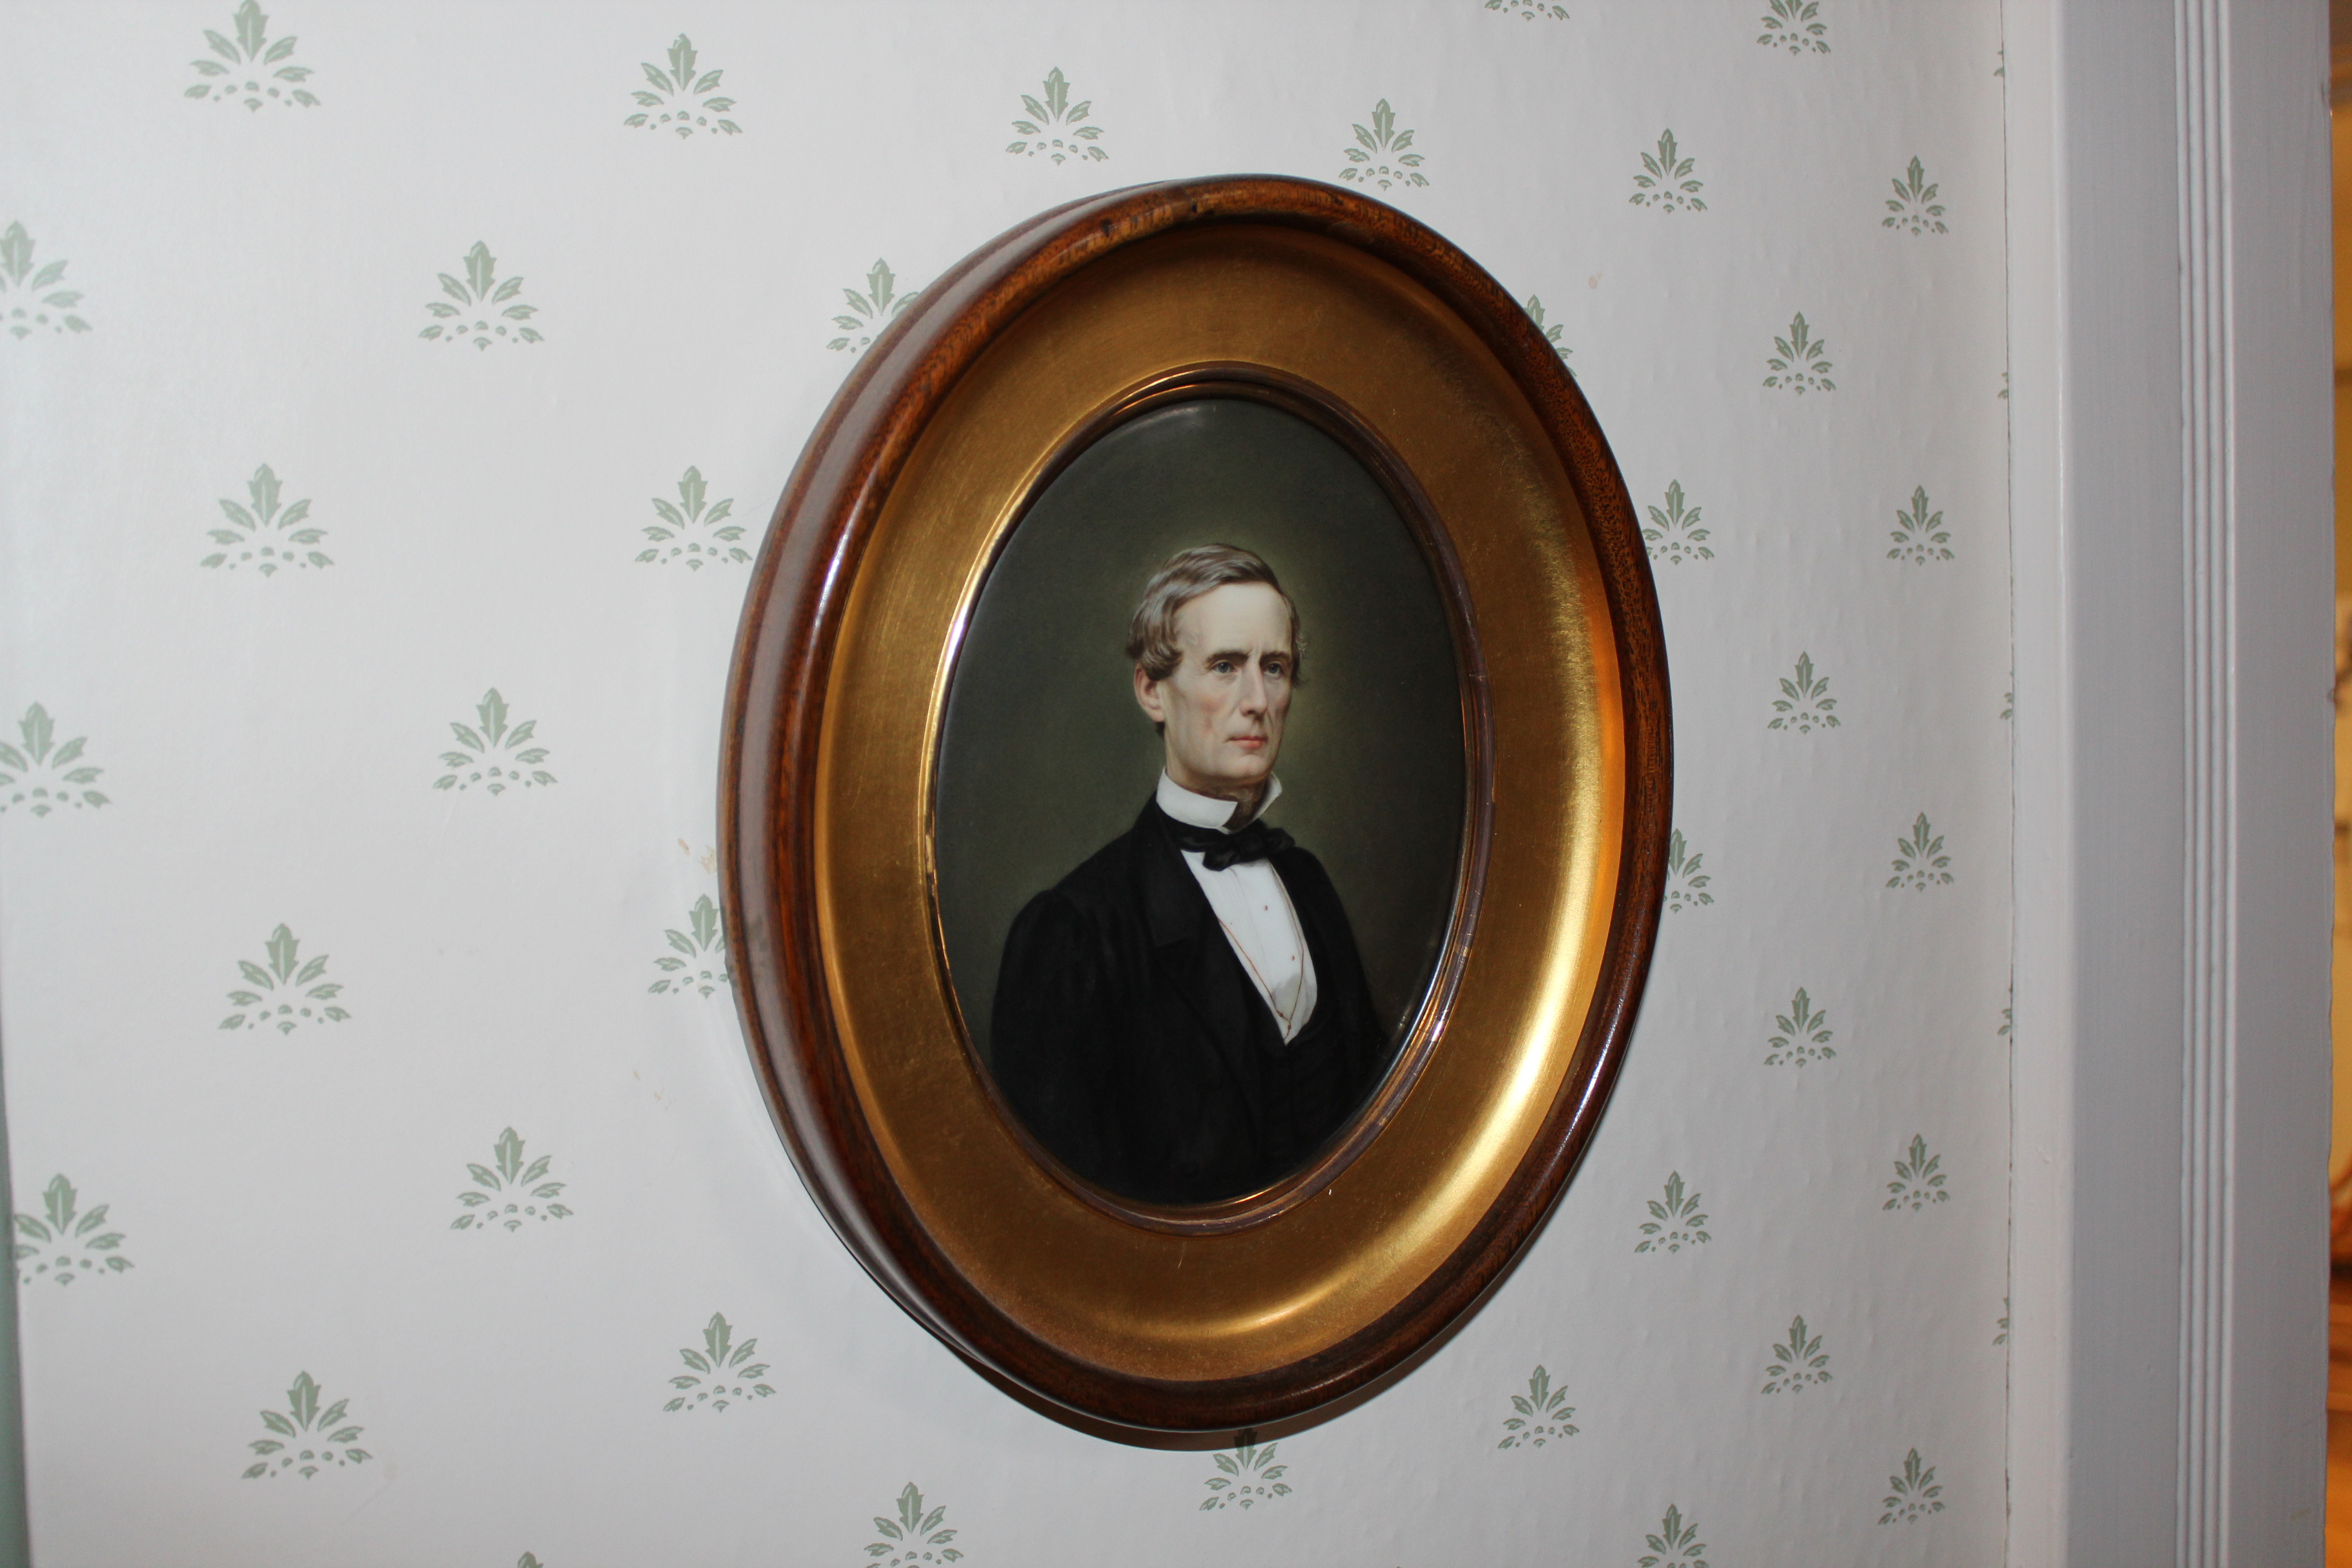 Portrait of Jefferson Davis on porcelain